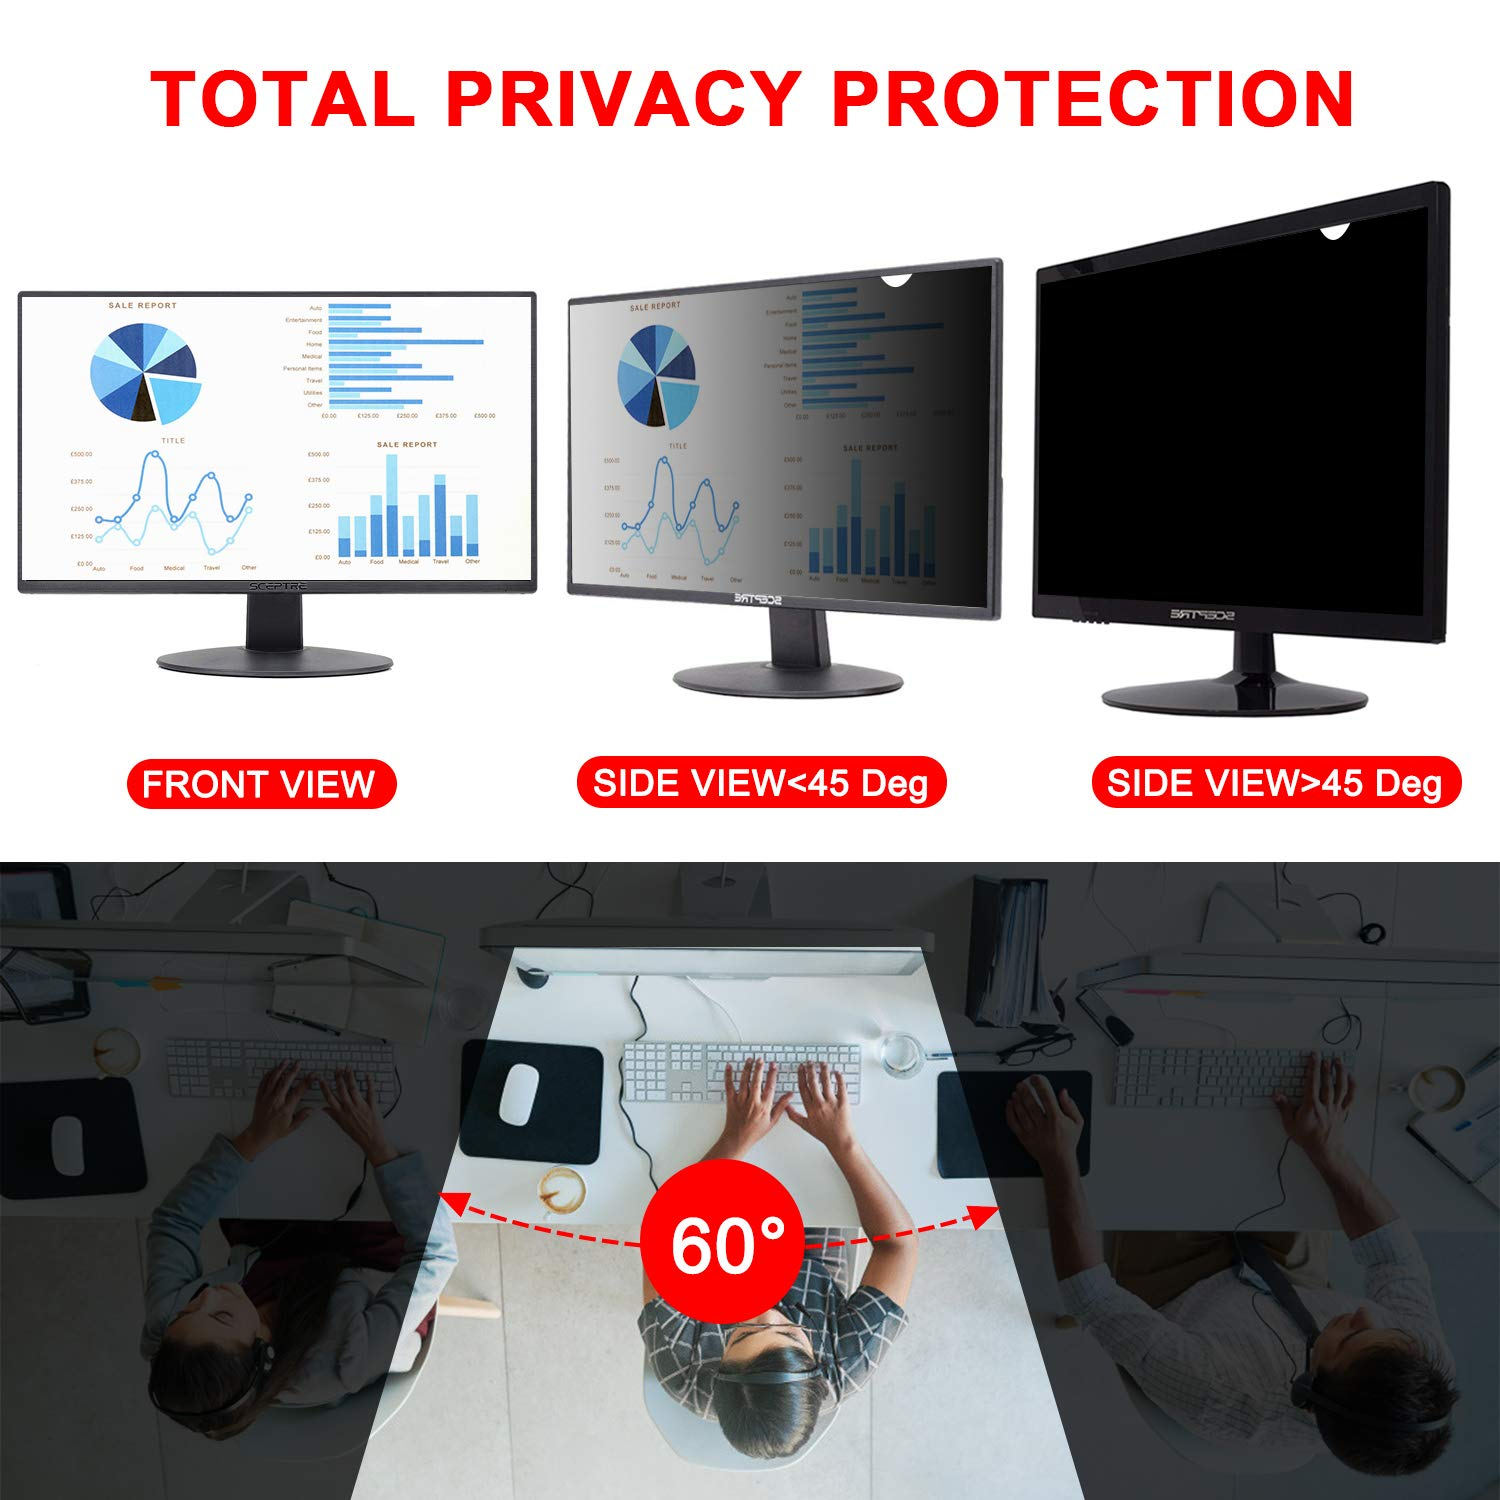 Magicmoon Privacy Filter Screen Protector, Anti-Spy&Glare Film for 23 inch Widescreen Computer Monitor (23'', 16:9 Aspect Ratio) by Magicmoon (Image #2)